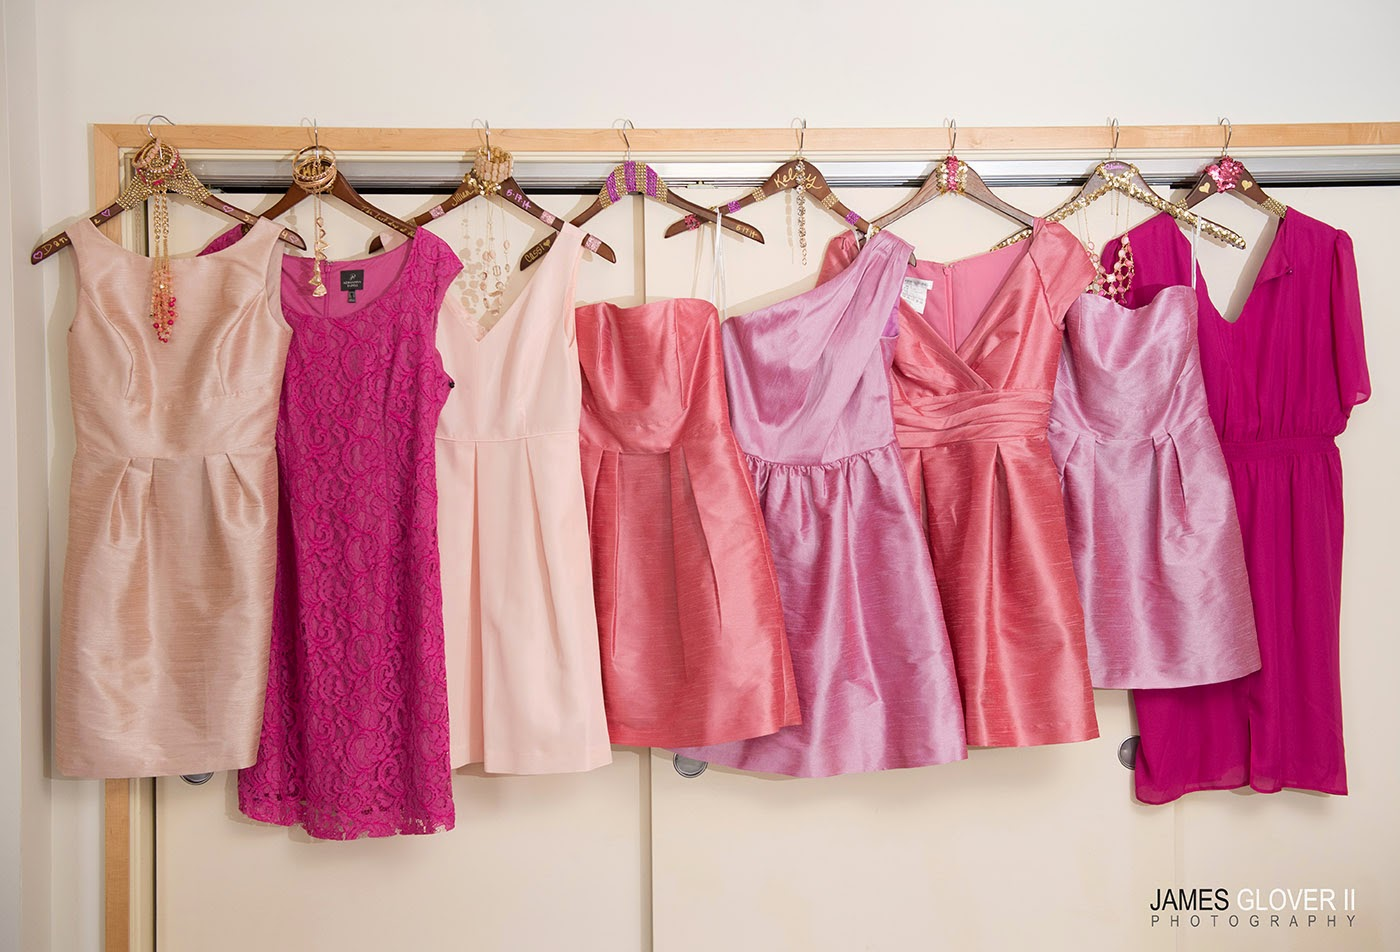 Shades of pink bridesmaid dresses // James Glover Photography // Take the Cake Event Planning